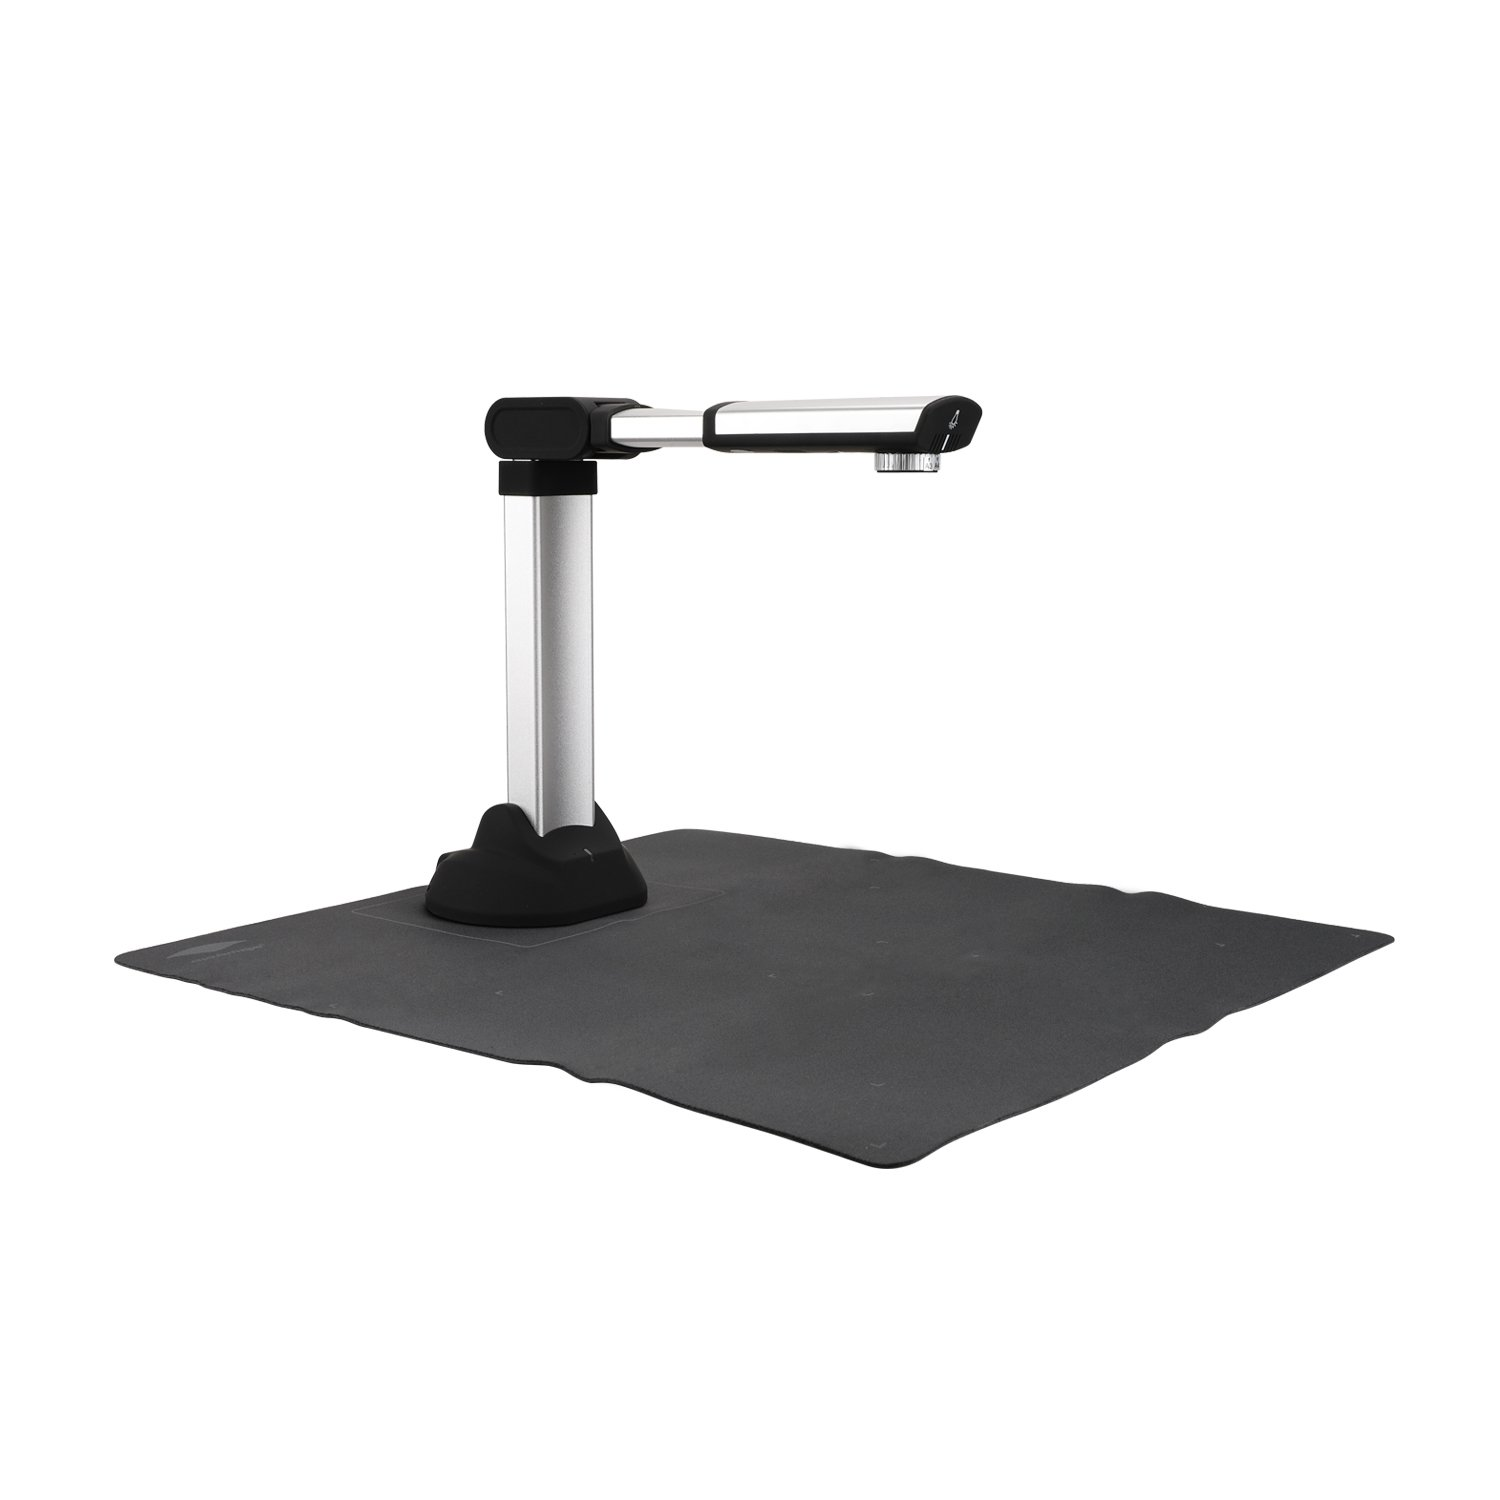 eloam Document Camera Scanner S1000A3 with 10 MegaPixel HD High-Definition A3 Capture Size,Smart OCR HighSpeed Document Camera